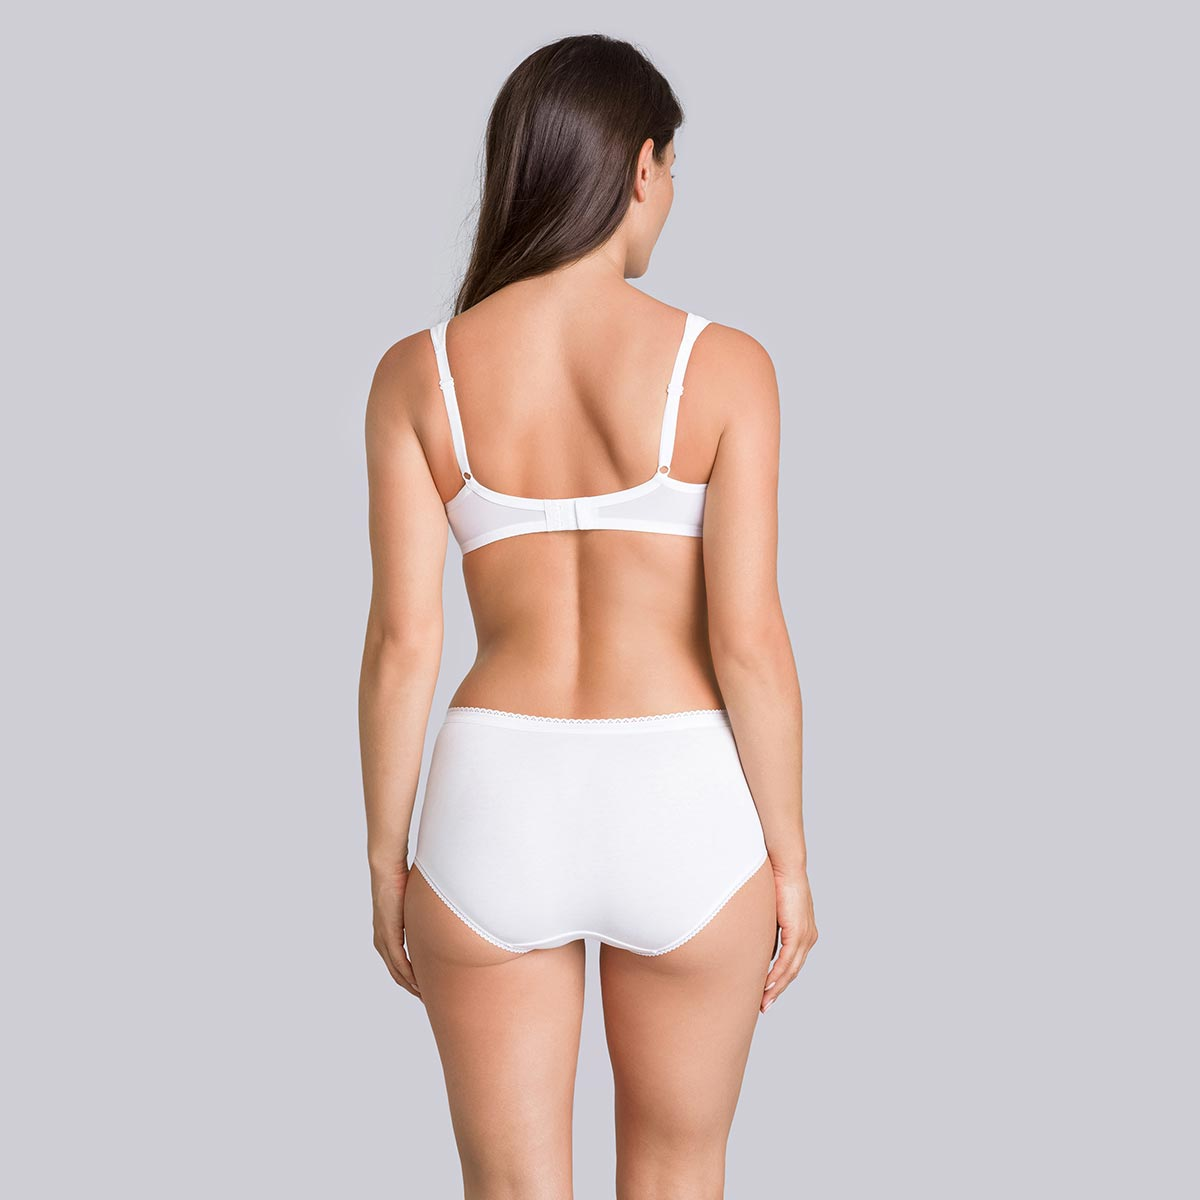 Sujetador reductor blanco - Expert in Silhouette , , PLAYTEX